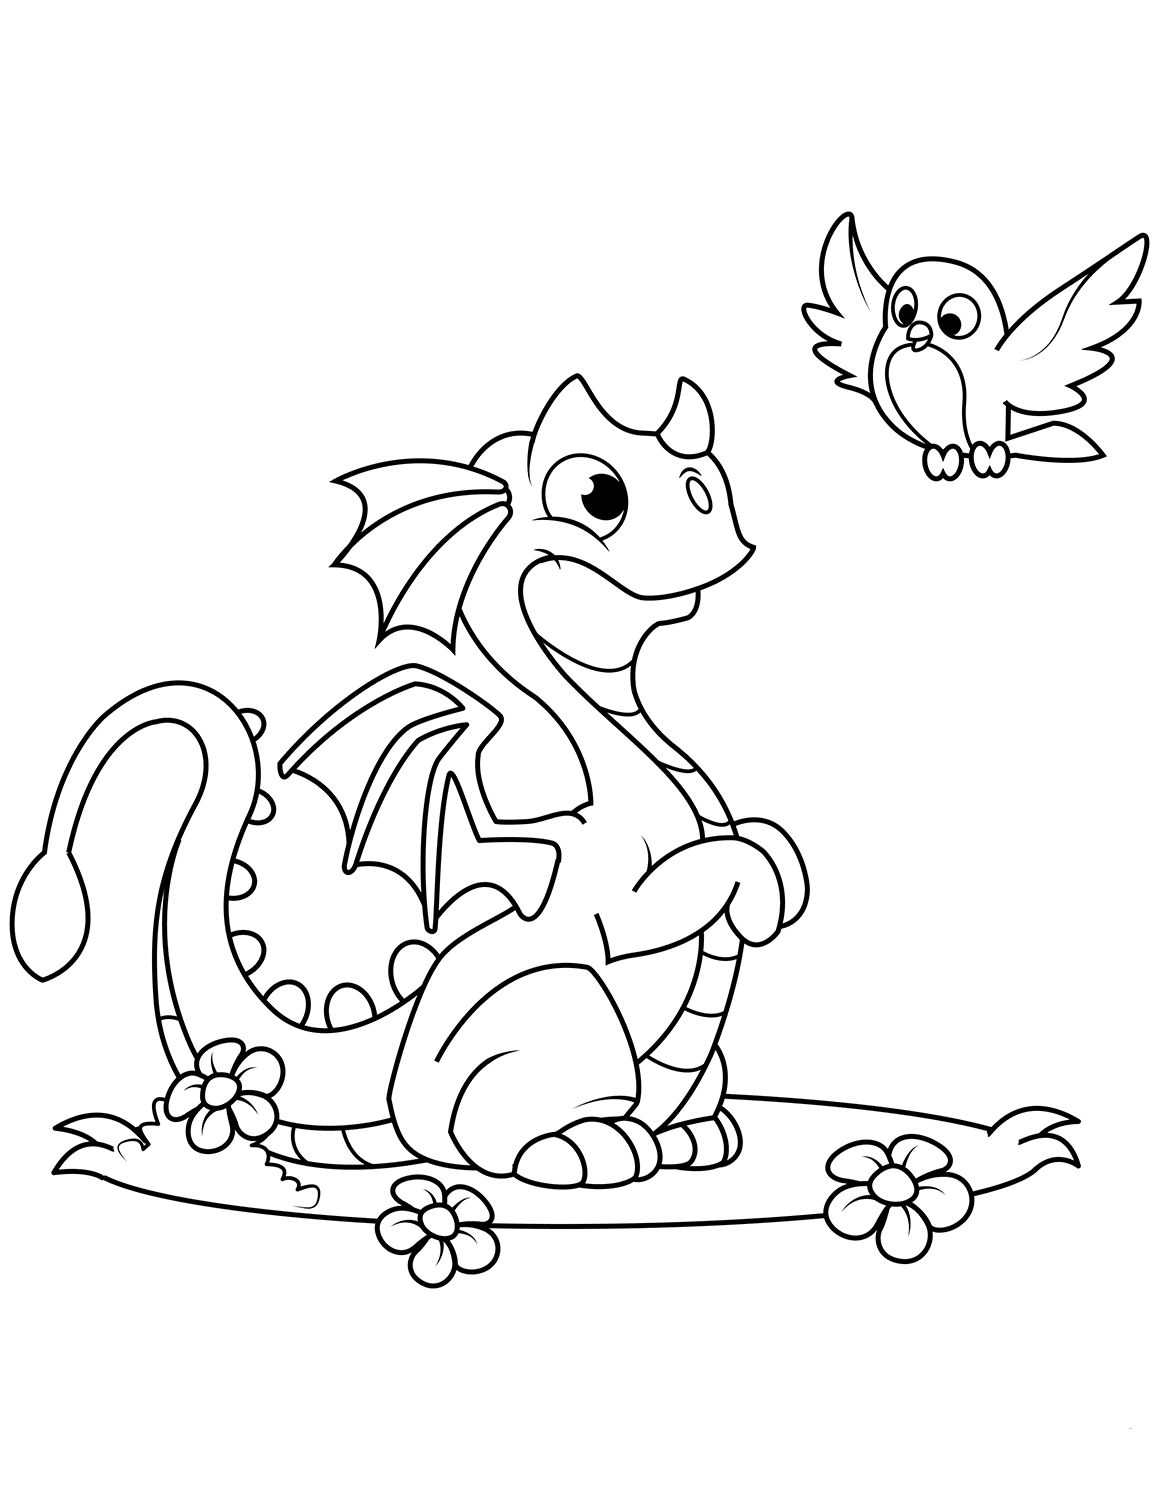 coloring pages dragon coloring pages for adults difficult dragons at getdrawings coloring pages dragon